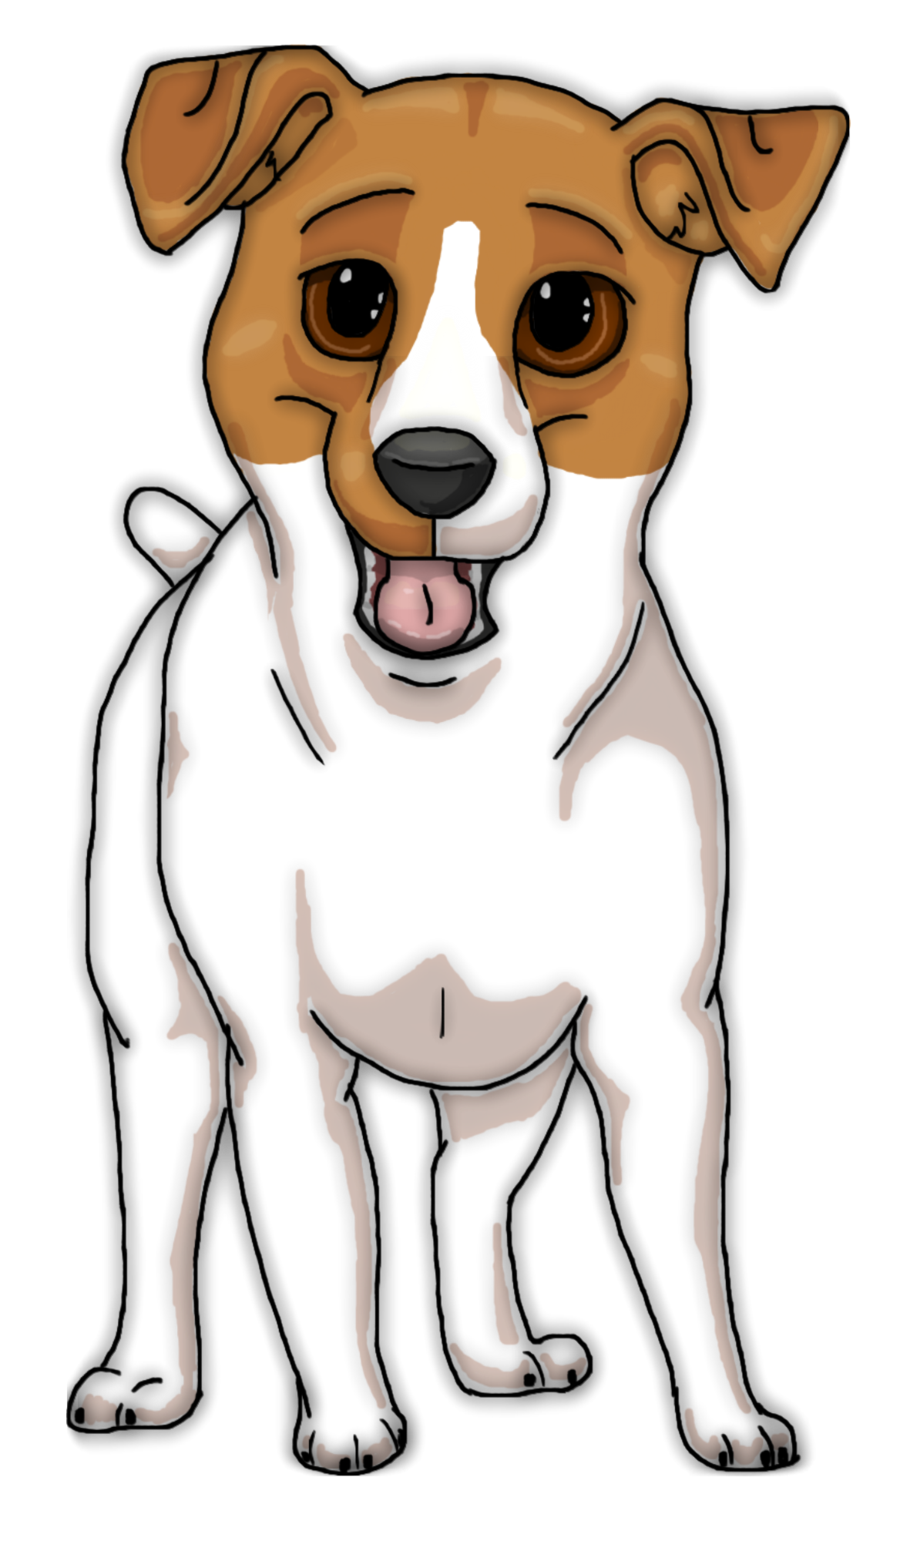 Cartoon dog clipart clip art library free dog clipart - Google Search | Dog Clipart | Pinterest | Free ... clip art library